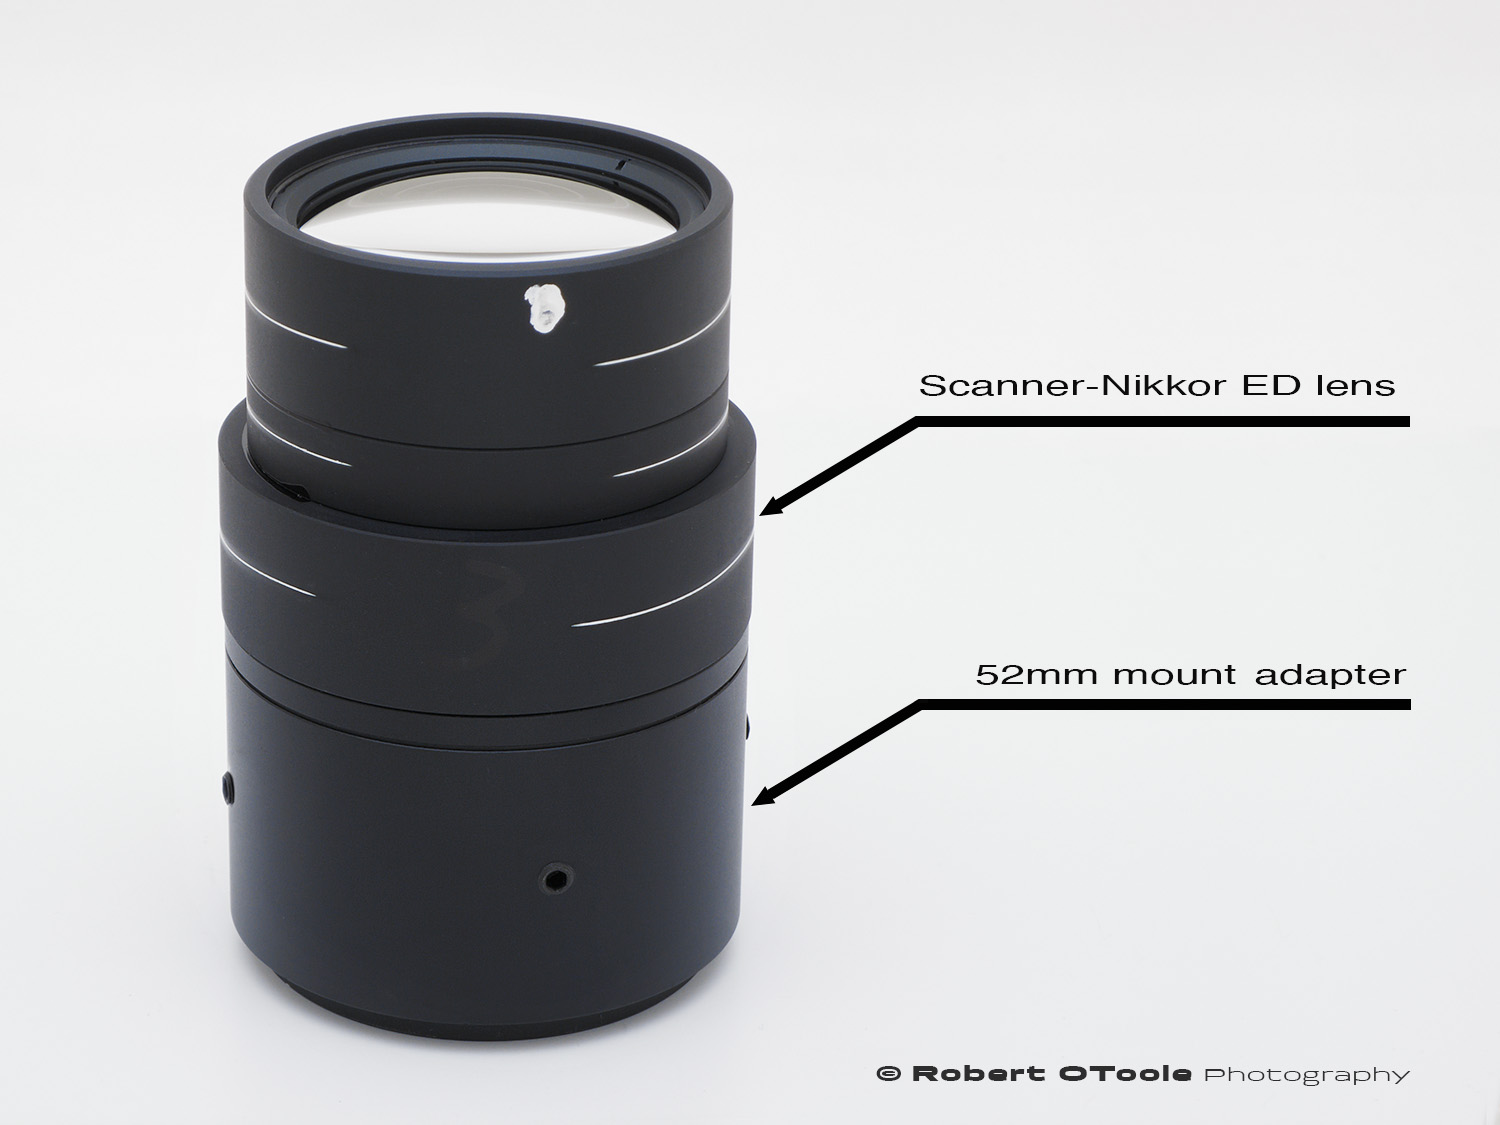 Scanner-Nikkor ED lens with 52mm mount adapter